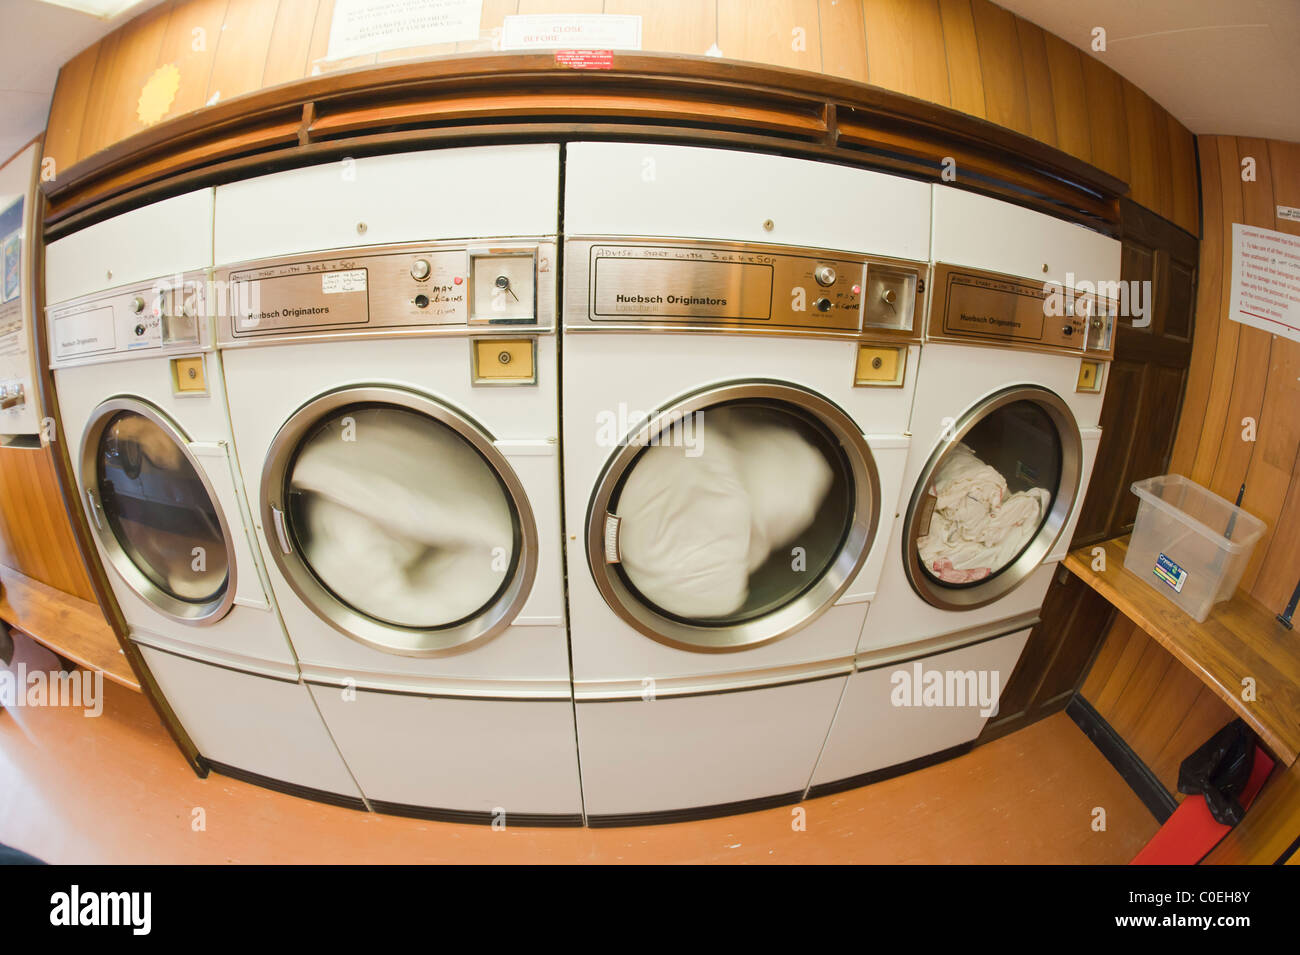 A laundrette with commercial driers showing movement as they spin in the Uk - Stock Image